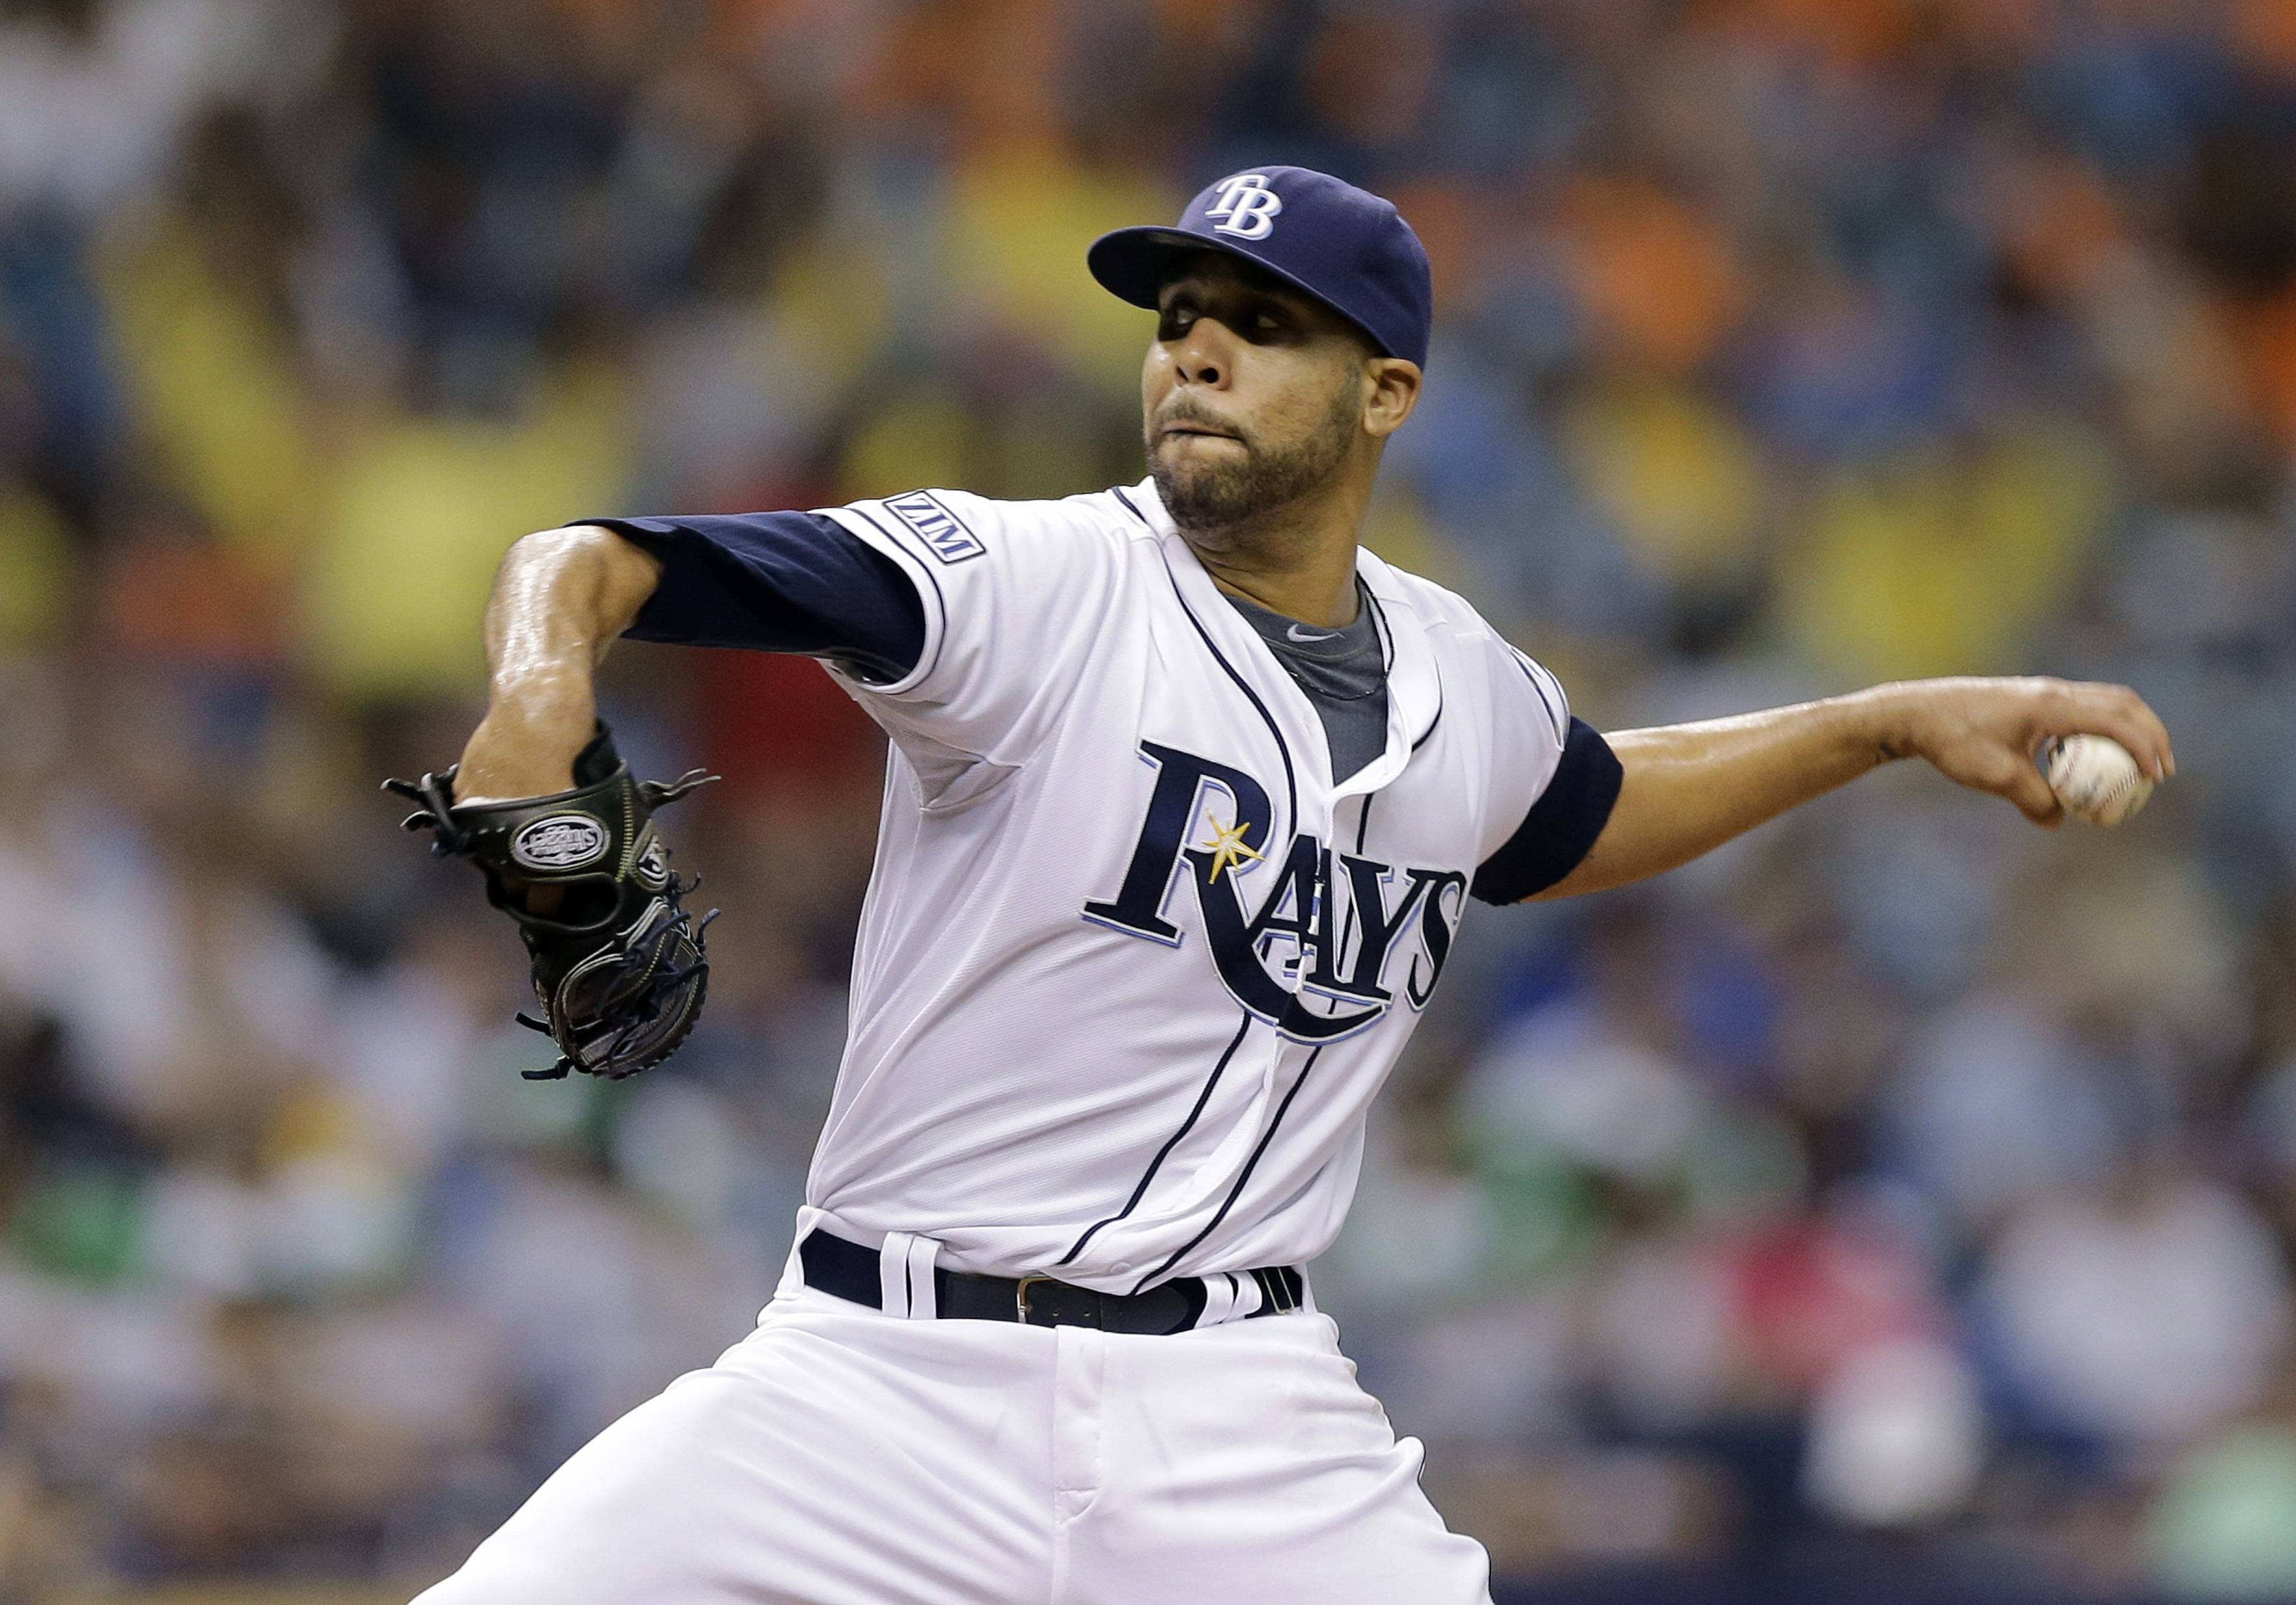 The Tampa Bay Rays traded pitcher David Price to the Detroit Tigers, according to a person familiar with the trade, speaking on the condition of anonymity because the deal has not been announced yet.